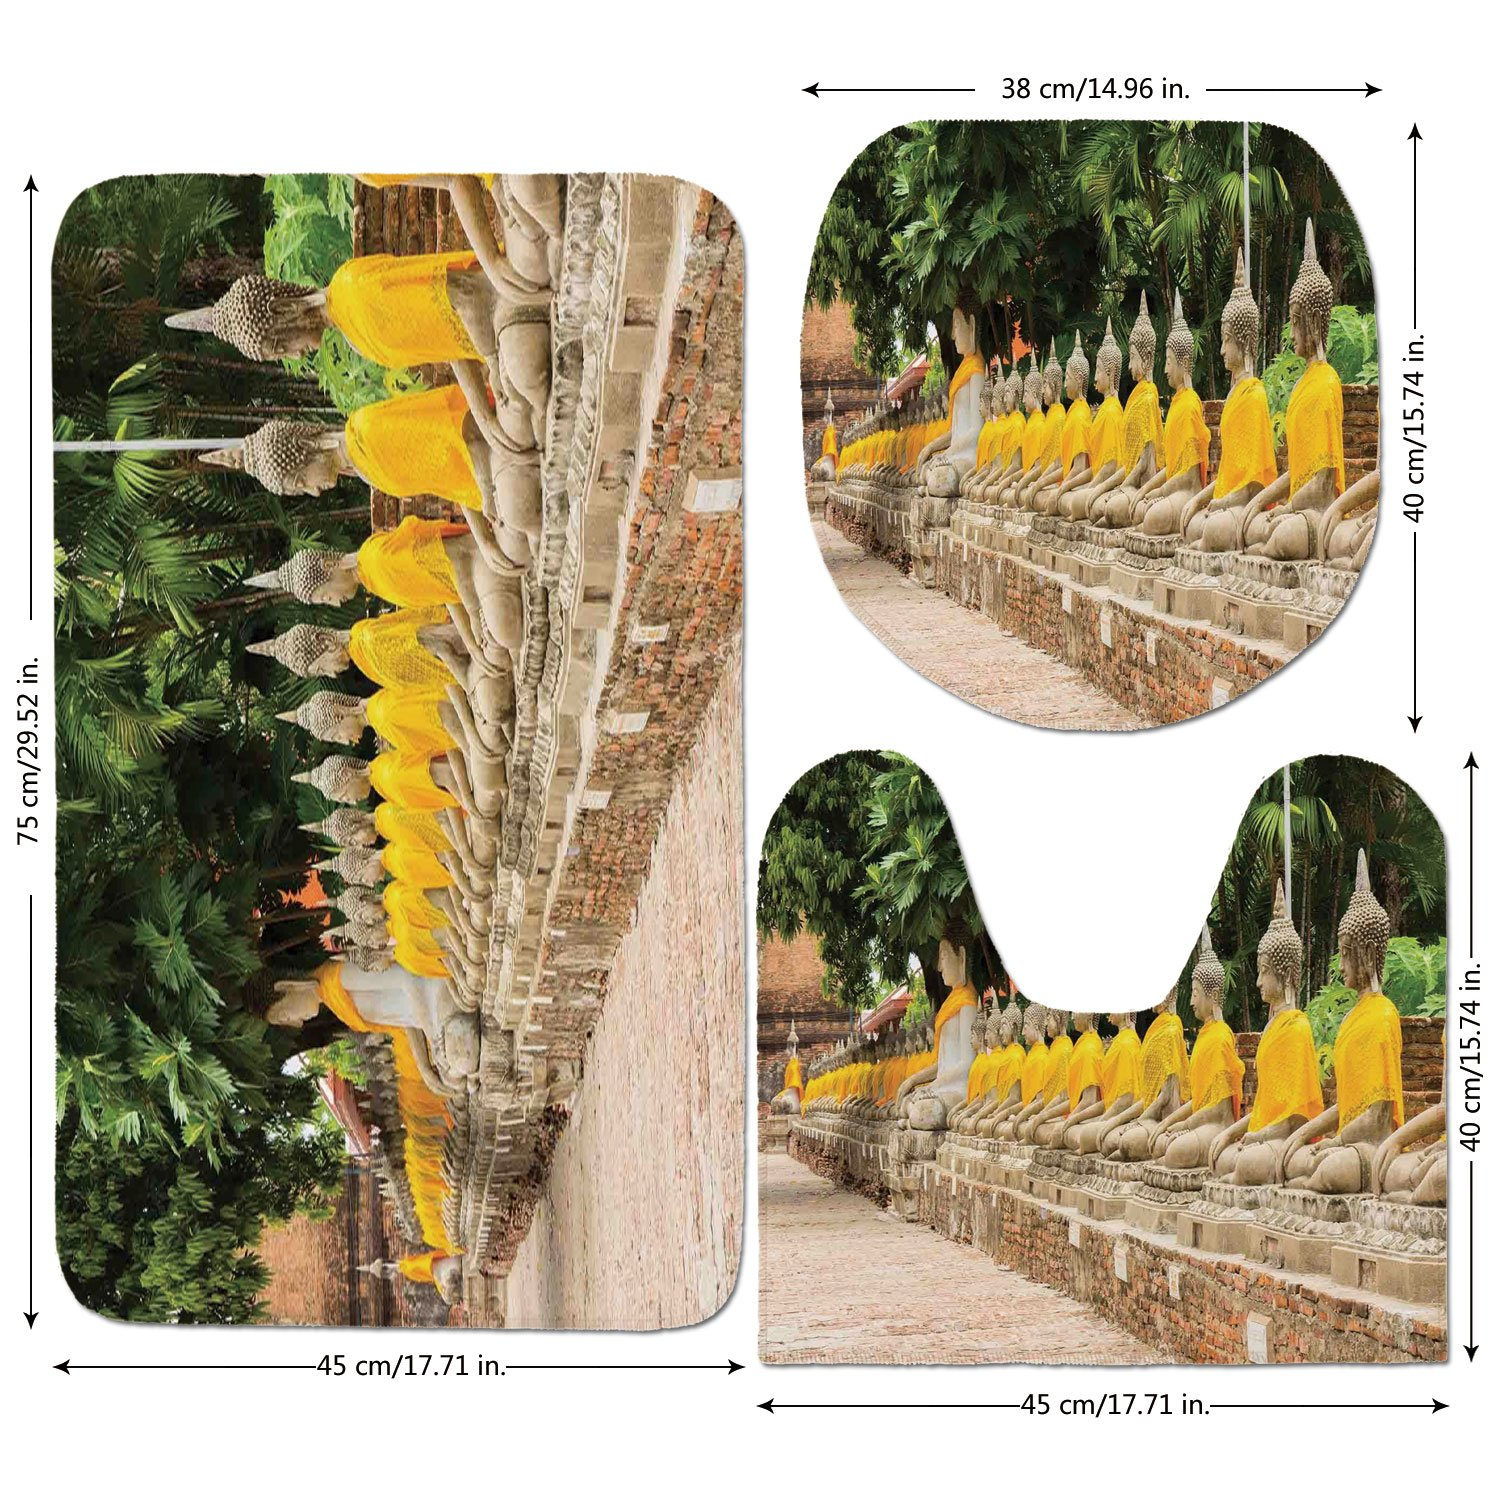 3 Piece Bathroom Mat Set,Asian-Decor,Picture-of-Religious-Statues-in-Thailand-Traditional-Thai-Home-Decor-Decorative,Cream-Yellow-Green.jpg,Bath Mat,Bathroom Carpet Rug,Non-Slip by iPrint